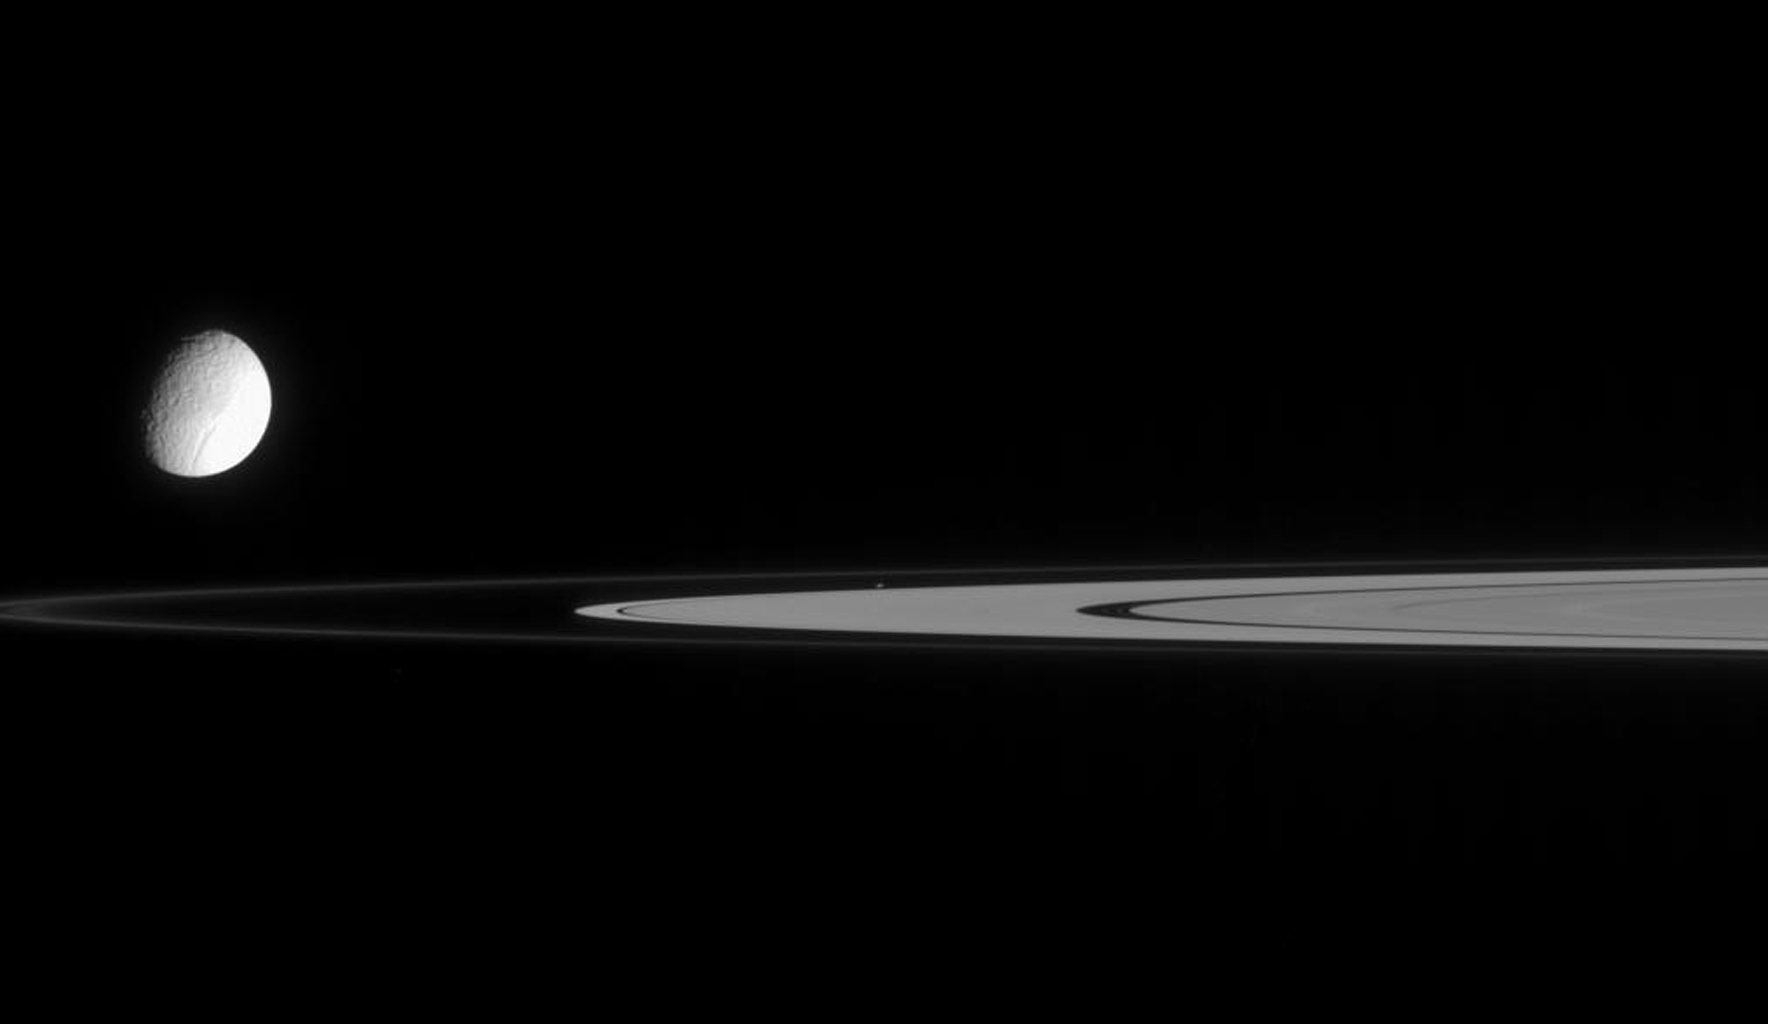 This view from NASA's Cassini spacecraft contains not one, but two moons. Tethys is slightly overexposed so that the real target of this image, tiny Atlas, can be seen. Atlas is at image center, just outside the A ring.